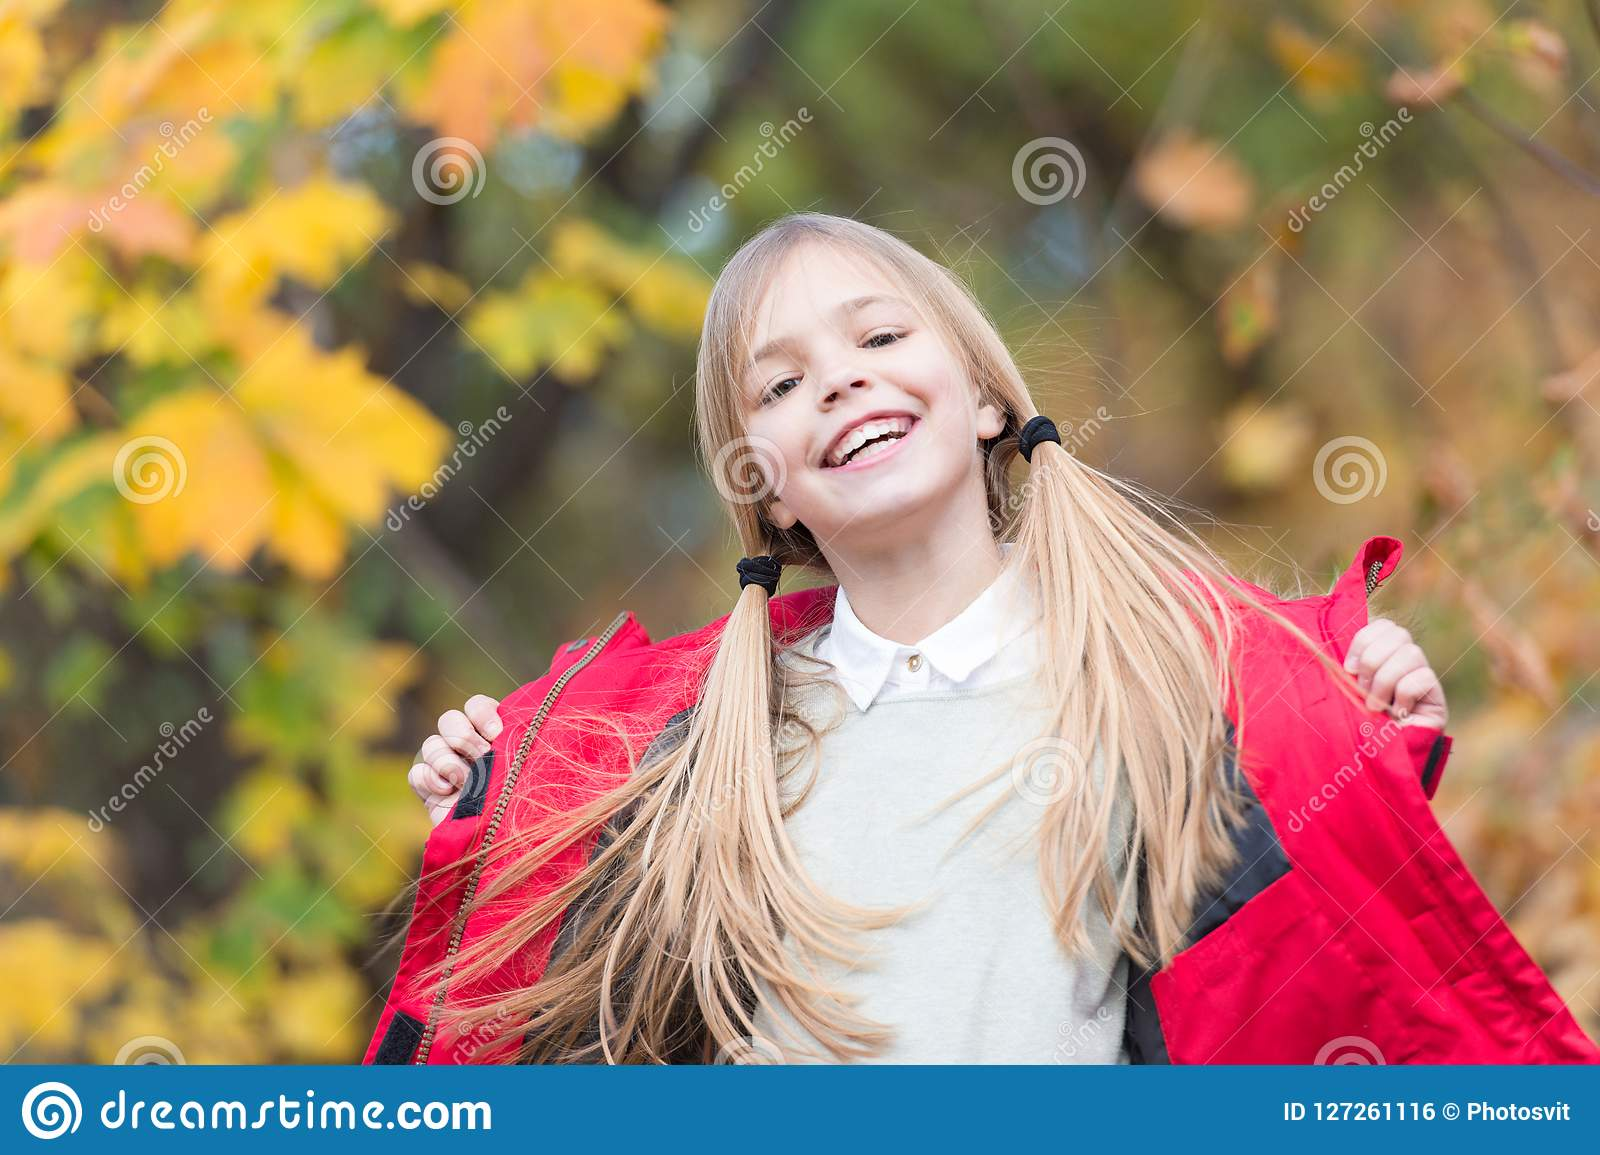 Kid girl wear coat for autumn season nature background child cheerful on fall walk warm coat best choice for autumn keep body warm clothes autumn days